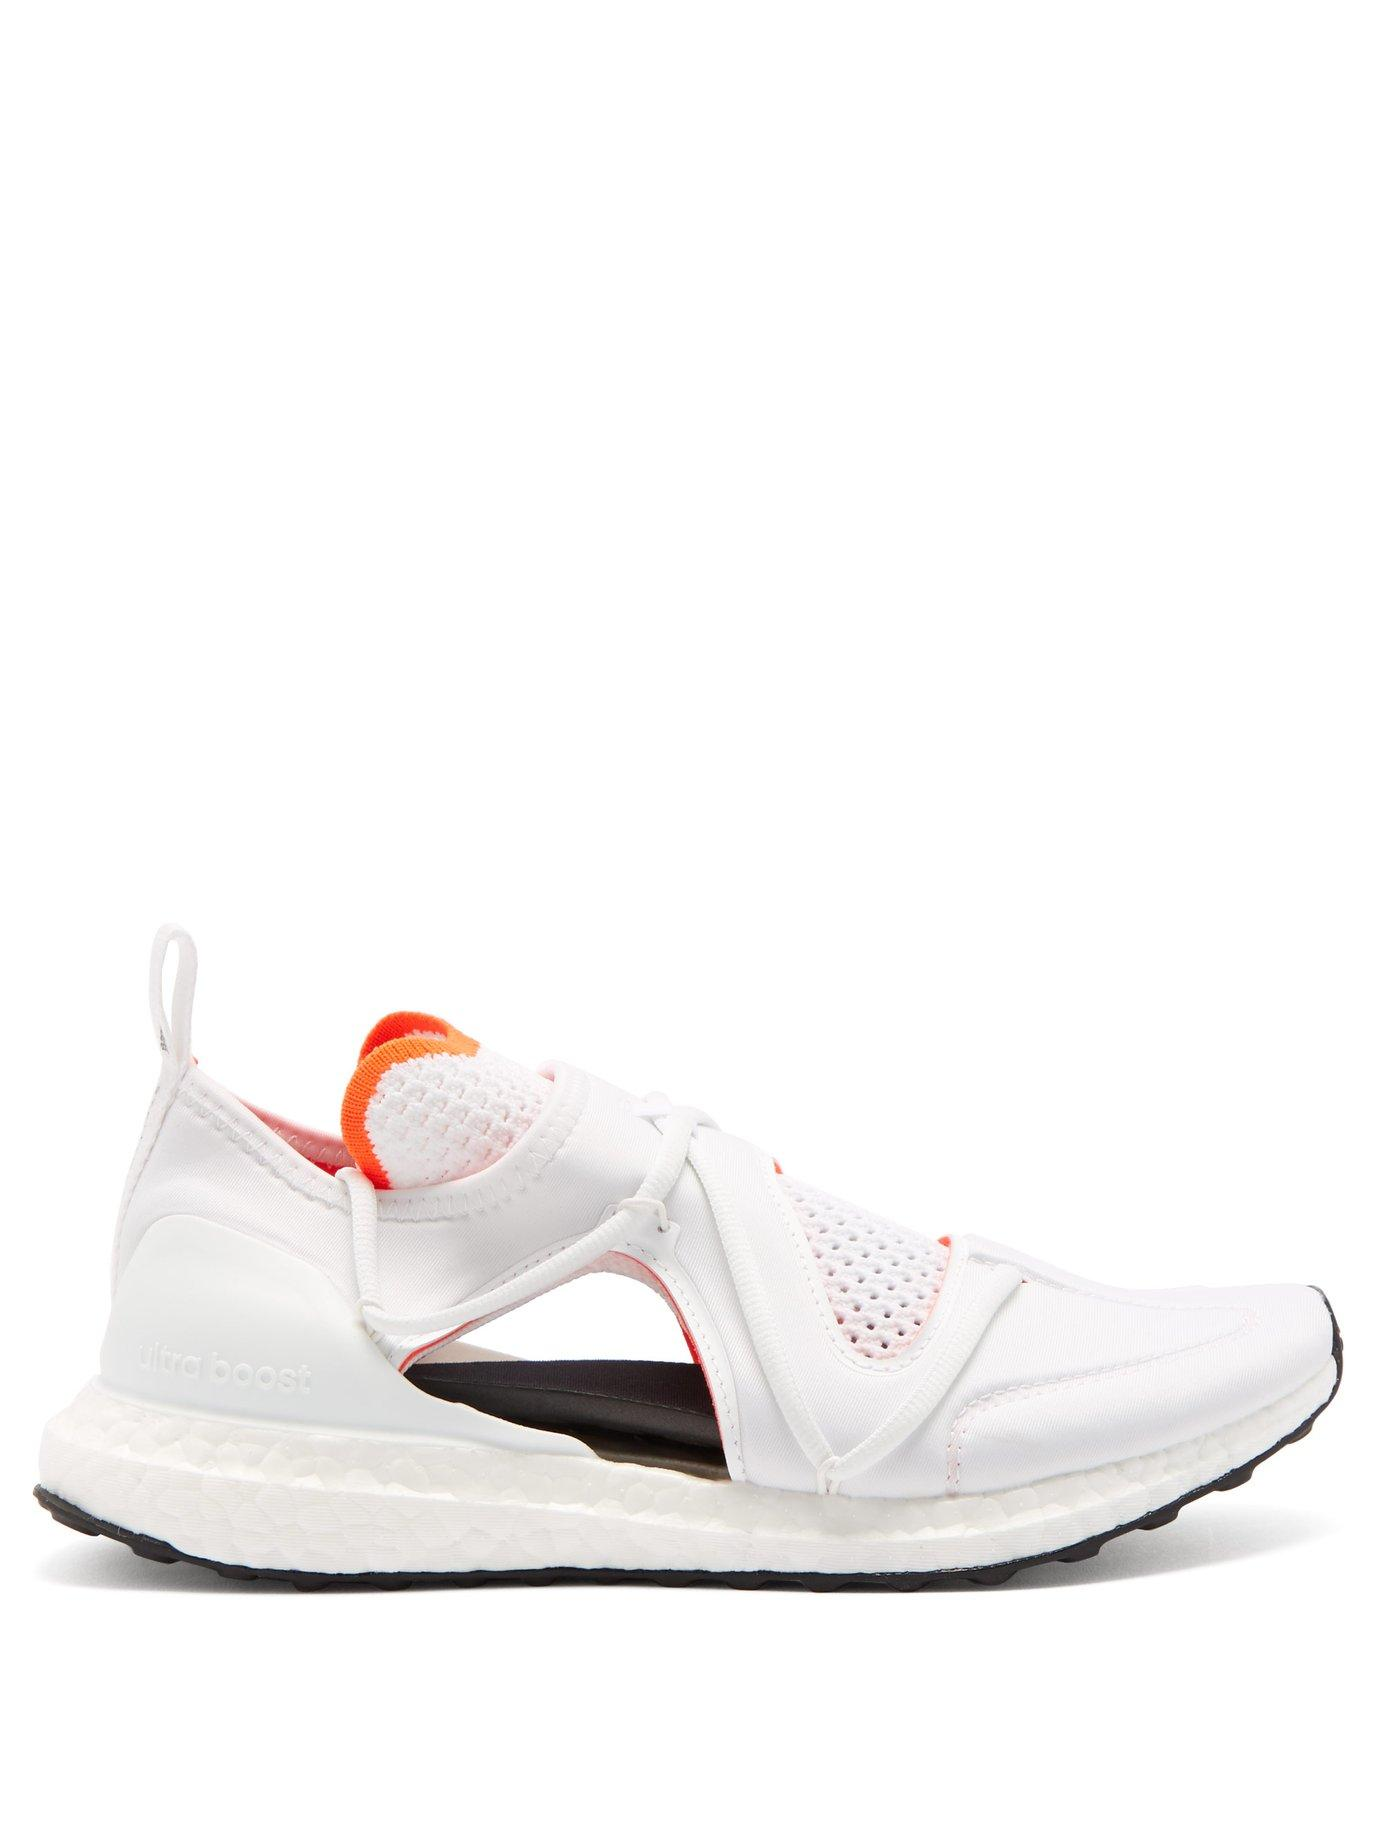 56504fba5b adidas By Stella McCartney. Women s White Ultraboost Cut Out Running  Trainers